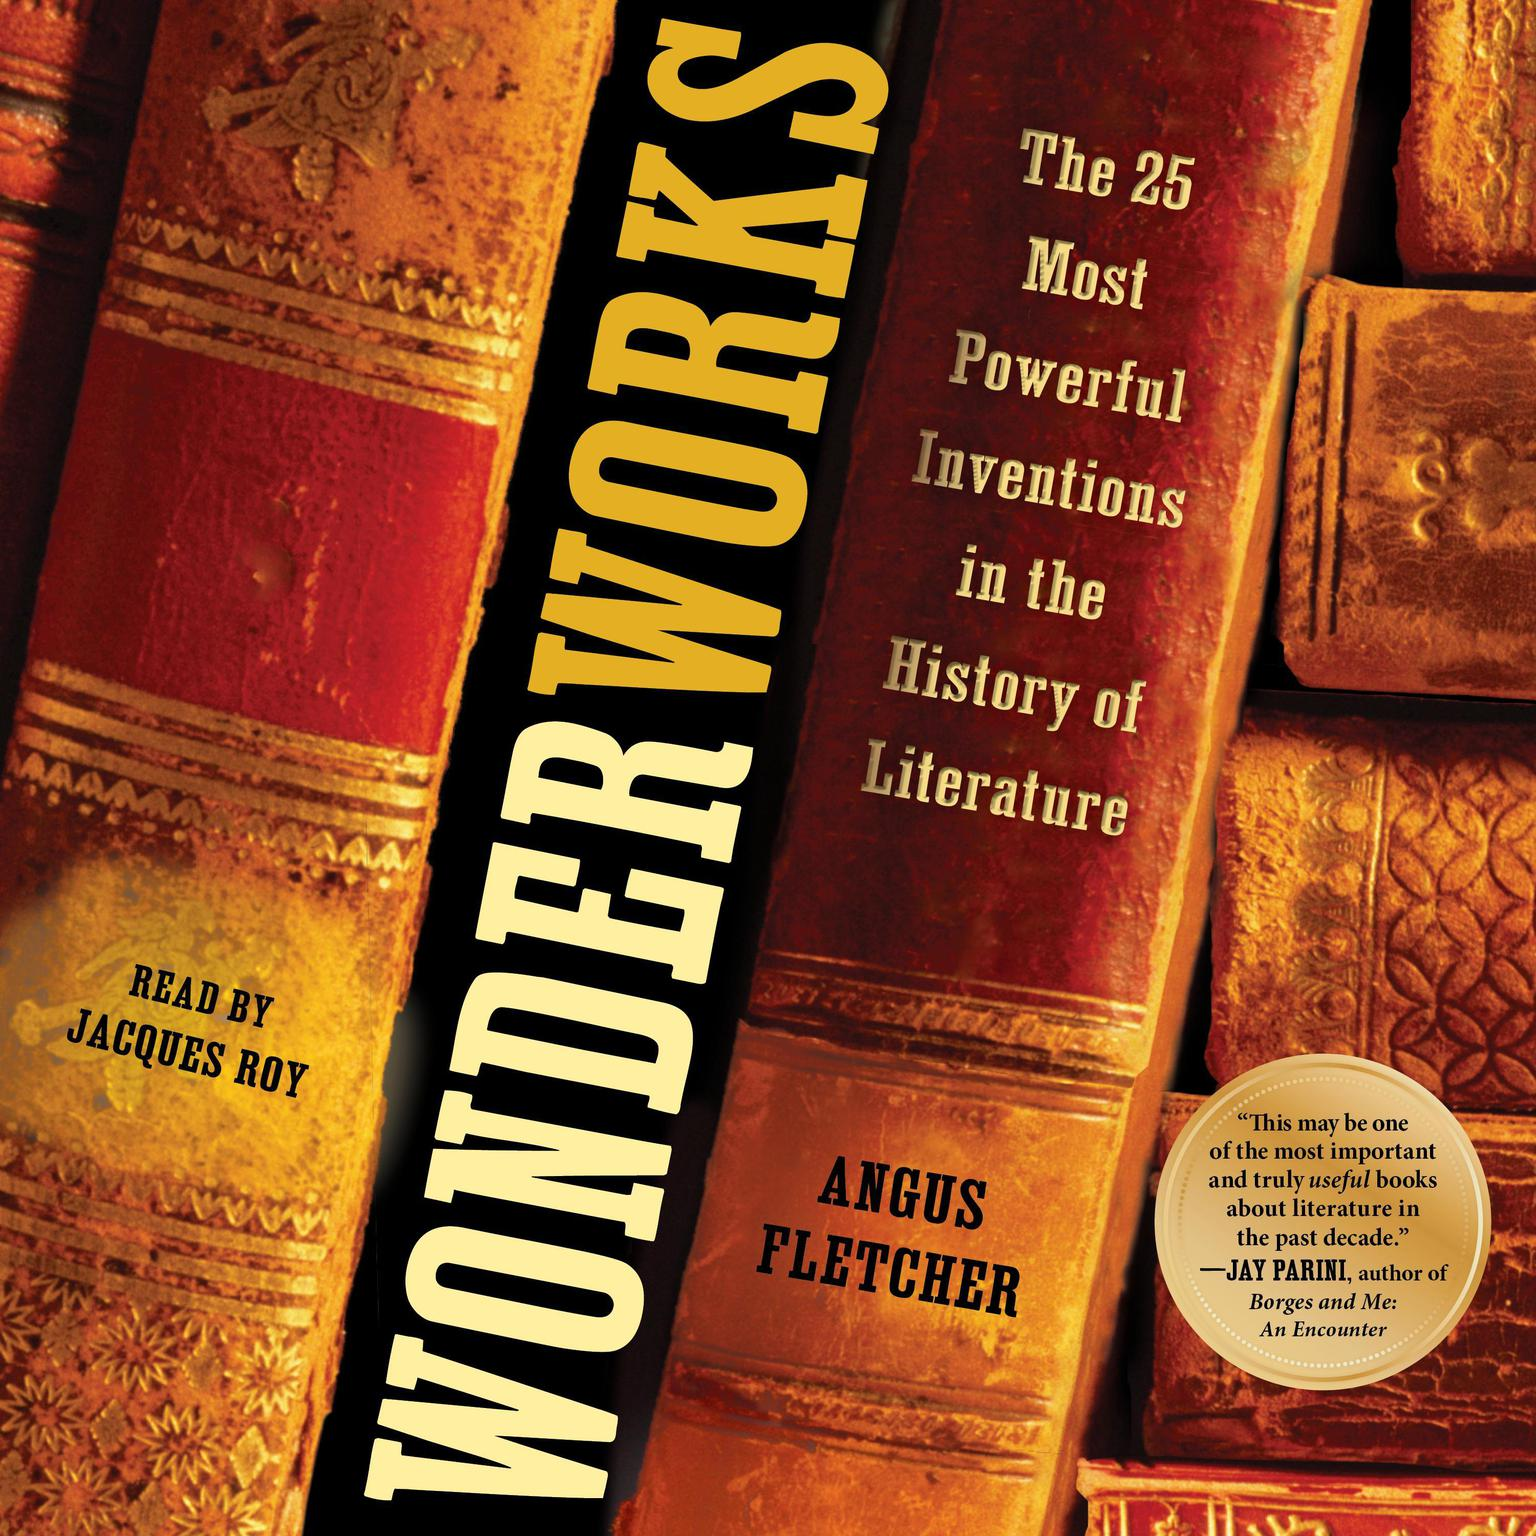 Wonderworks: The 25 Most Powerful Inventions in the History of Literature Audiobook, by Angus Fletcher